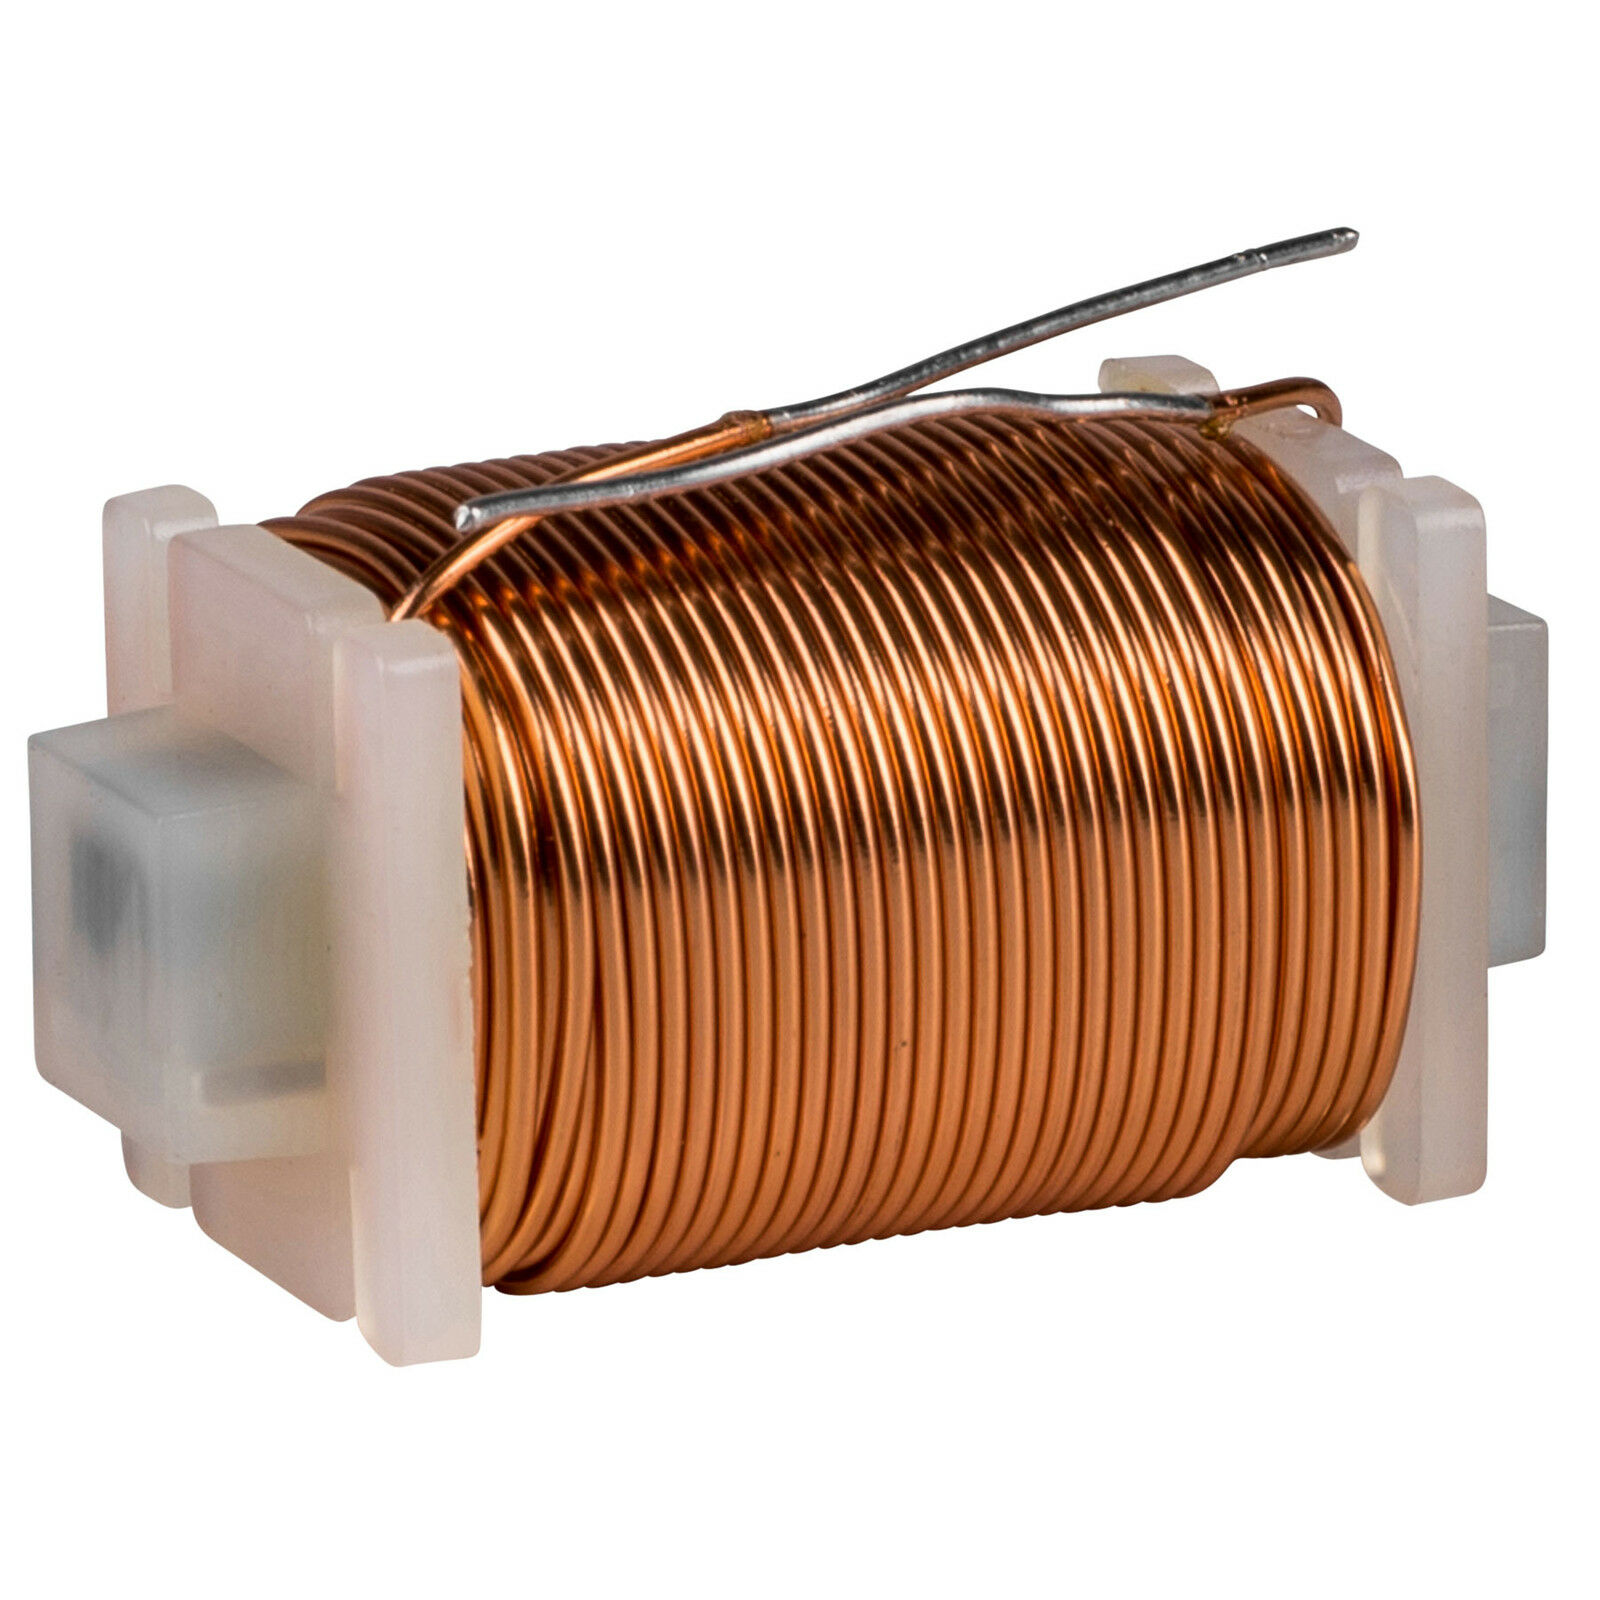 Dayton Audio AC202 2.0mH 20 AWG Air Core Inductor Coil